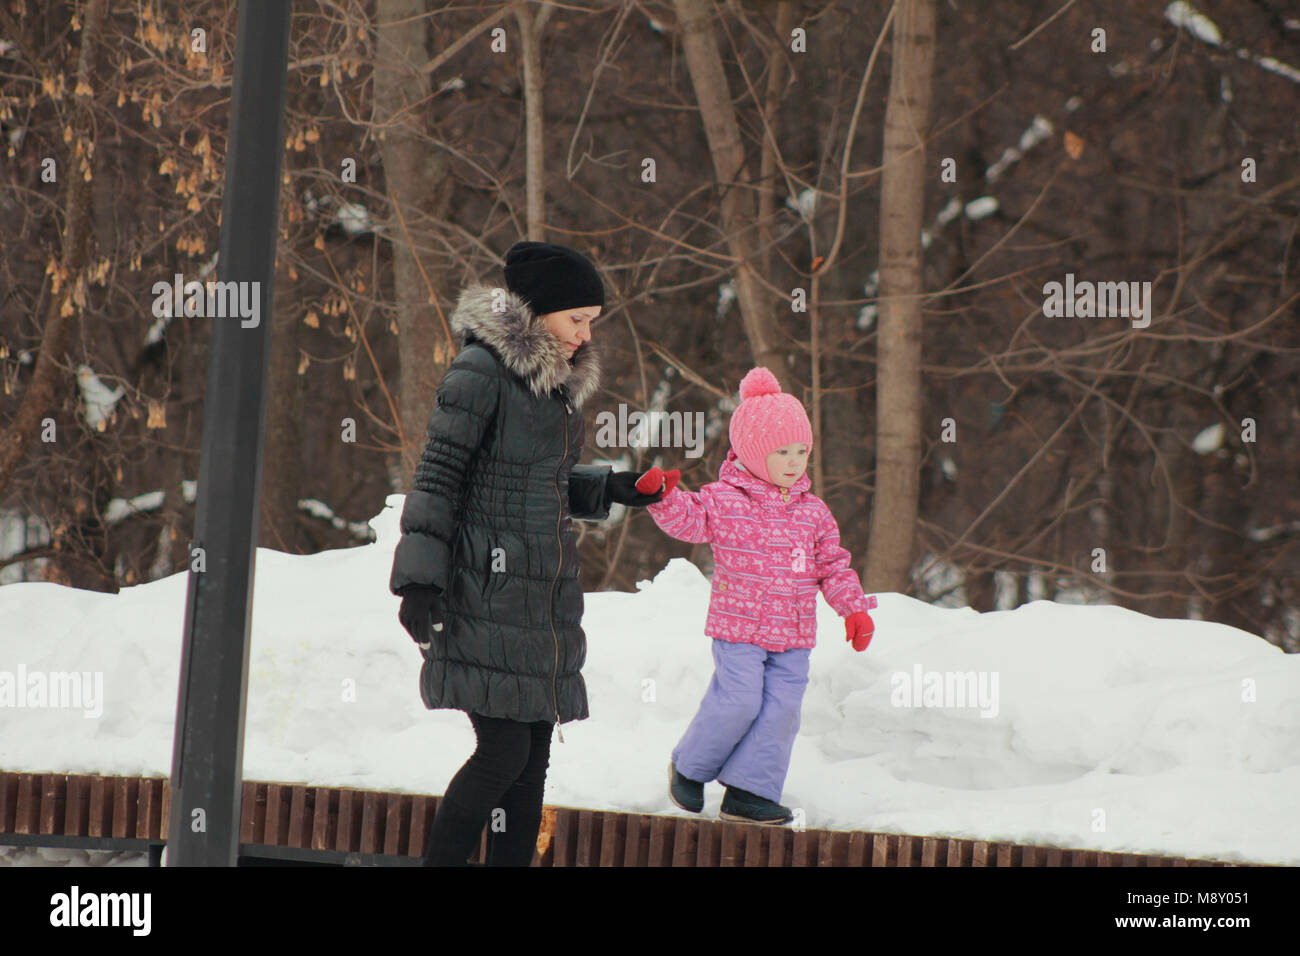 Cute little girl walking with her mother on winter street, daughter breaking out and going independently - Stock Image